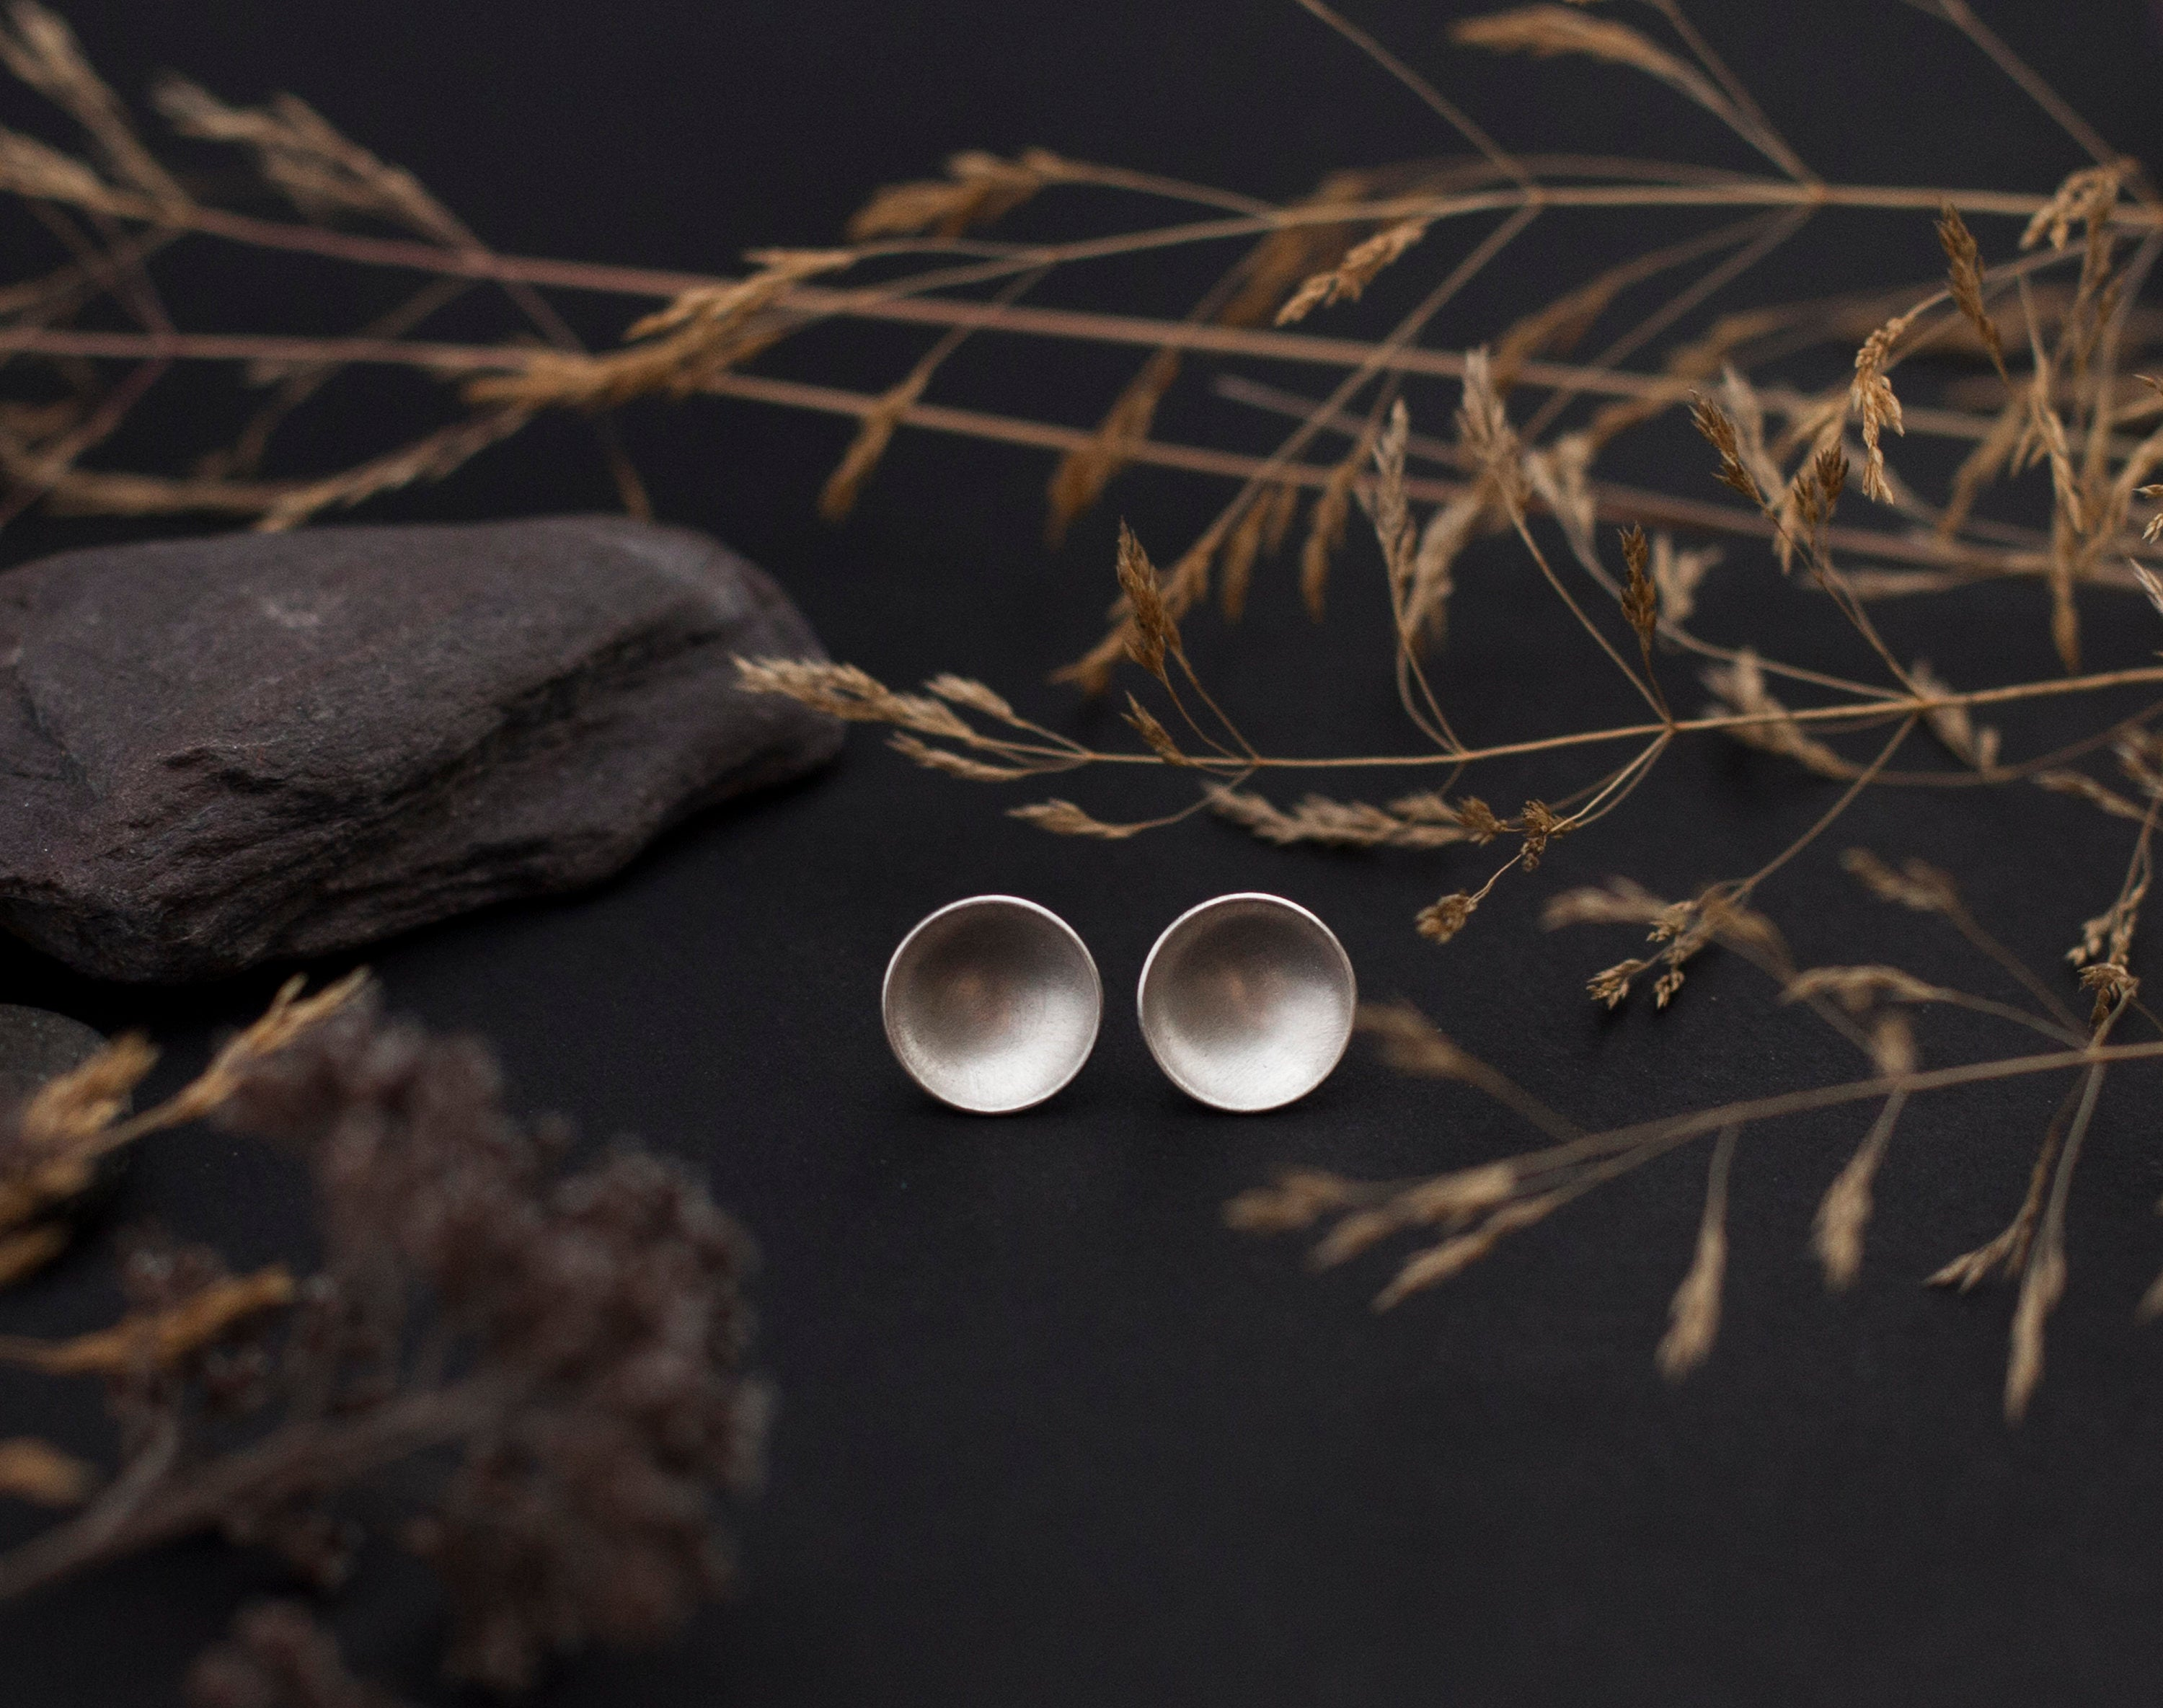 Large bowl earrings in silver - 12mm ø (made to order)